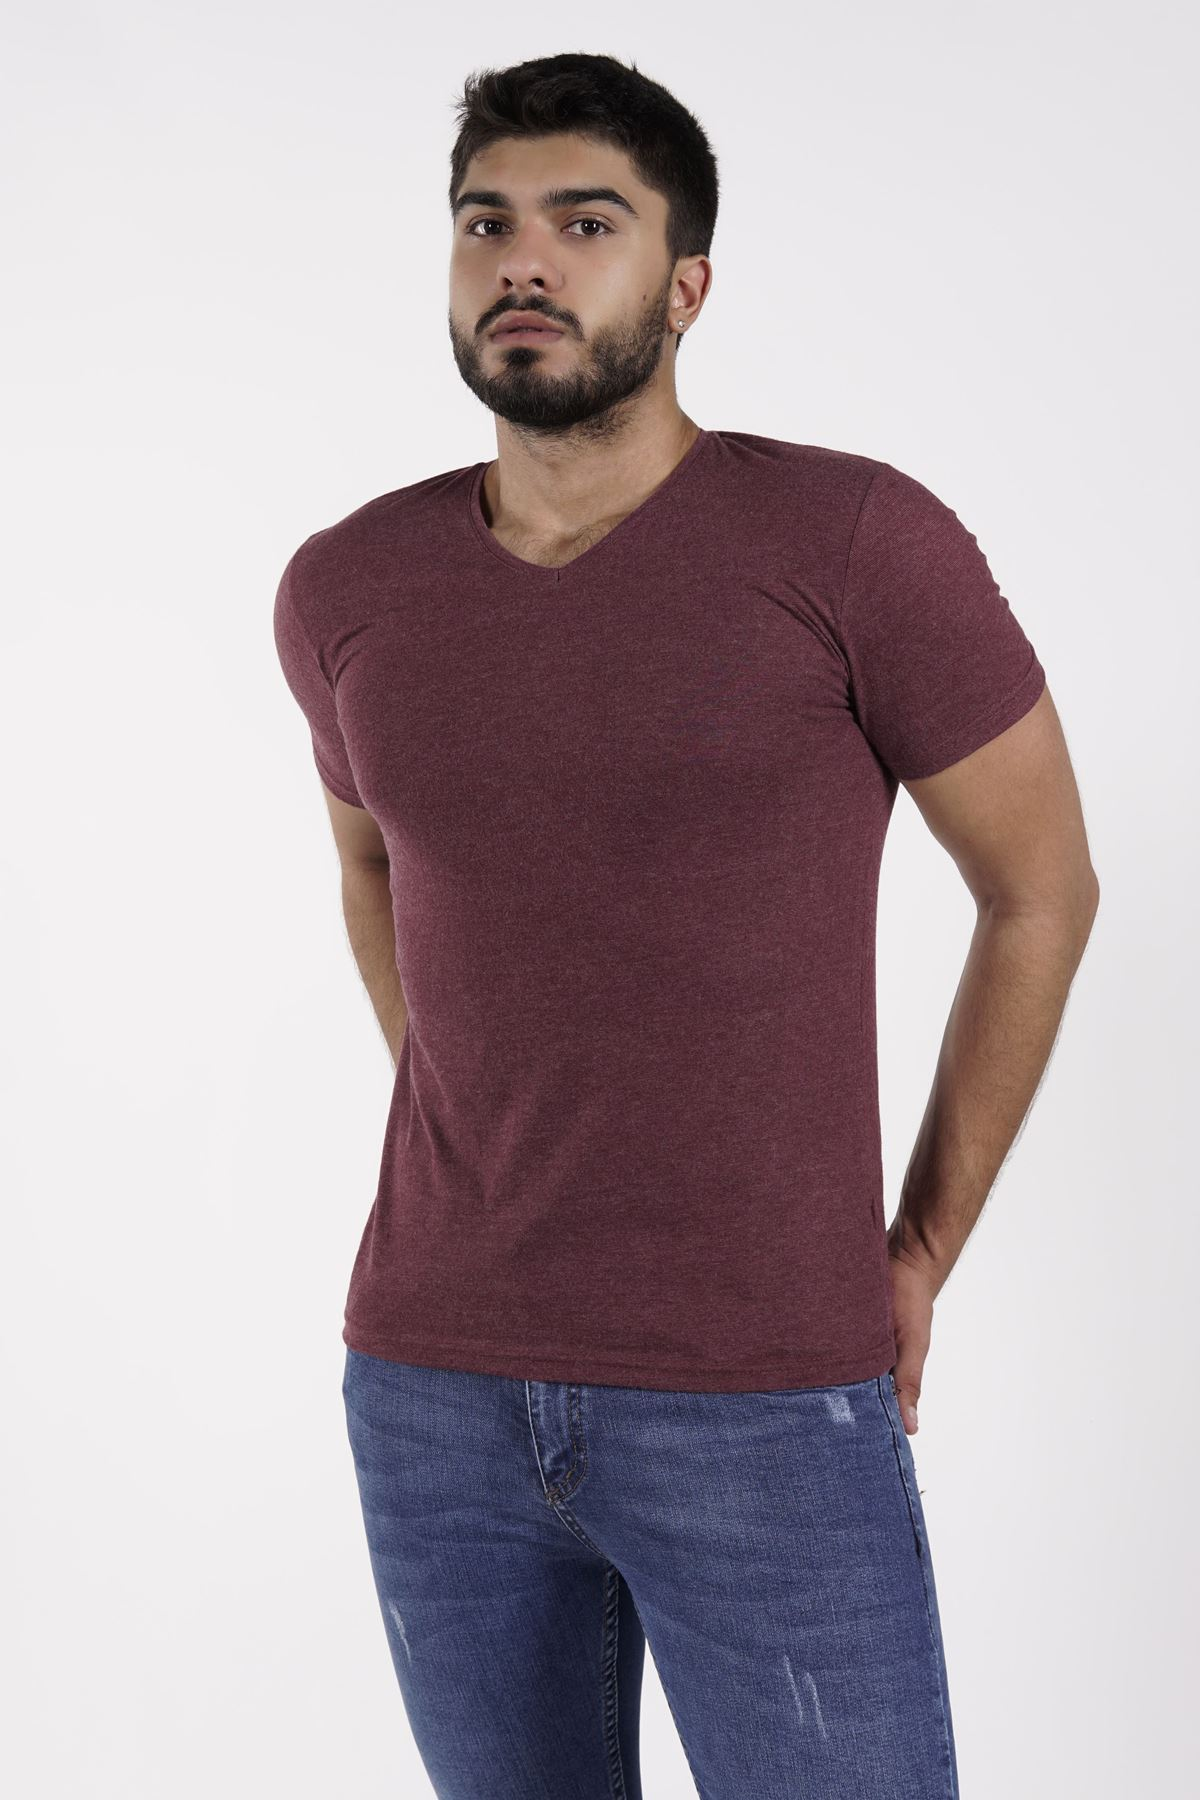 TROY LİFE Petek Vafıl Bordo Erkek T-shirt